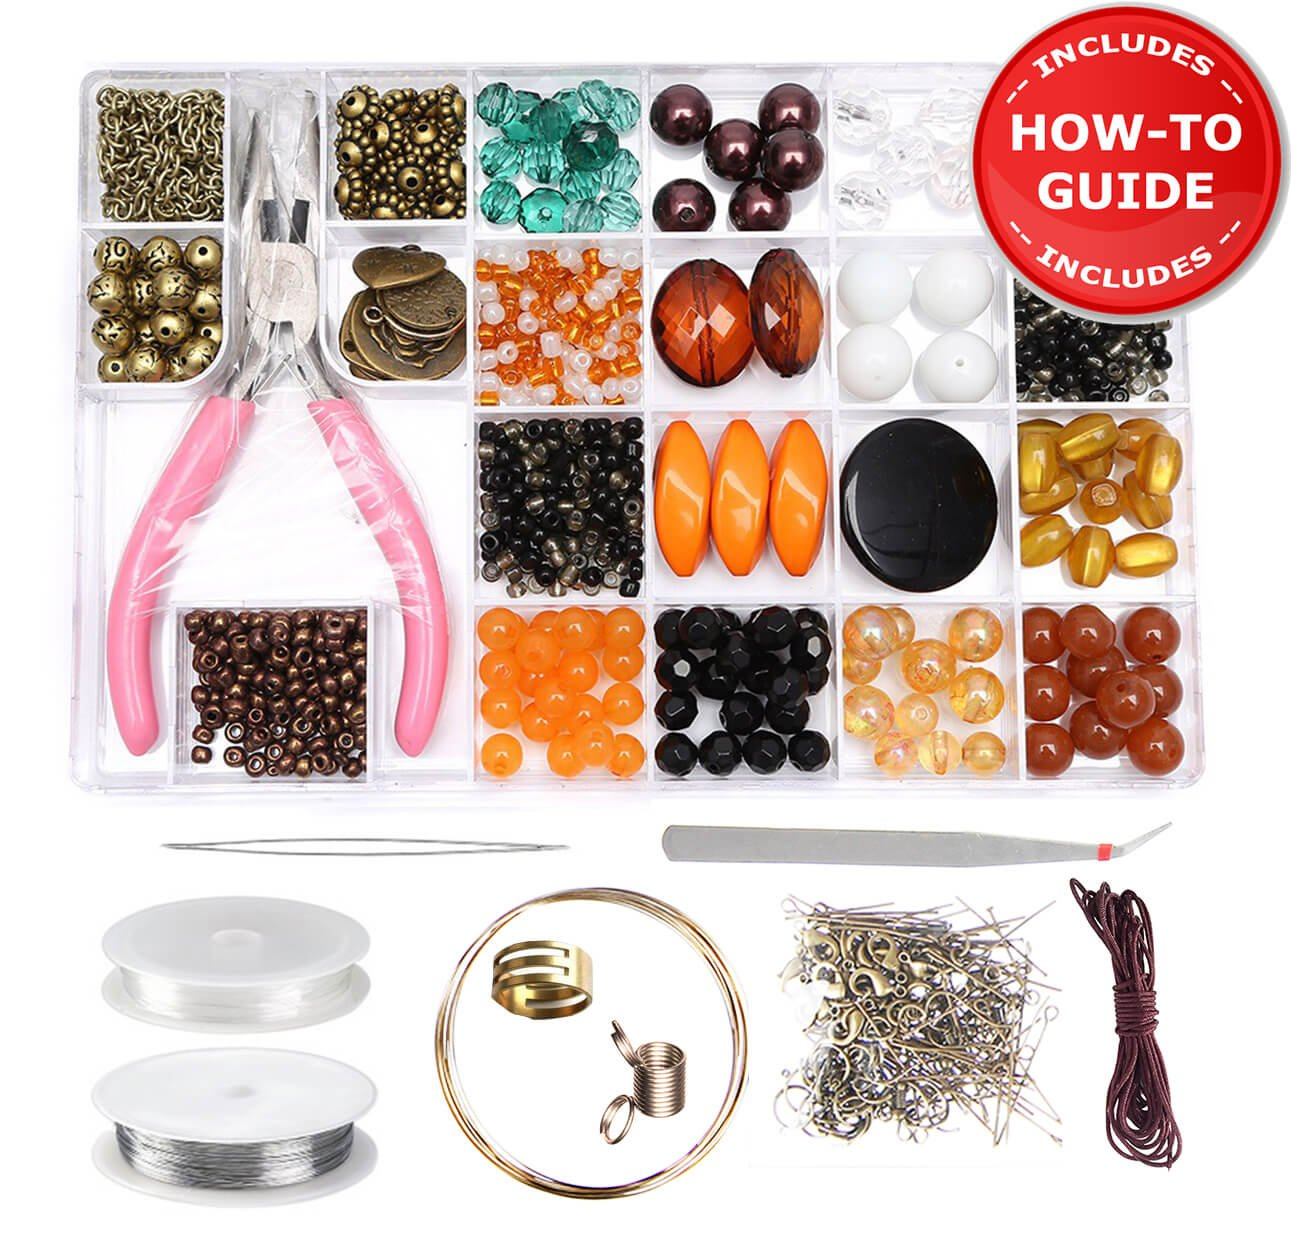 Jewelry Making Kit - Beading Starter Kit, All Needed Wire Jewellery Making Supplies, Beads for Adults, Girls, Women, Teens, Beginners to Make DIY Bracelets, Necklaces, Earrings | Pink, Silver Modda